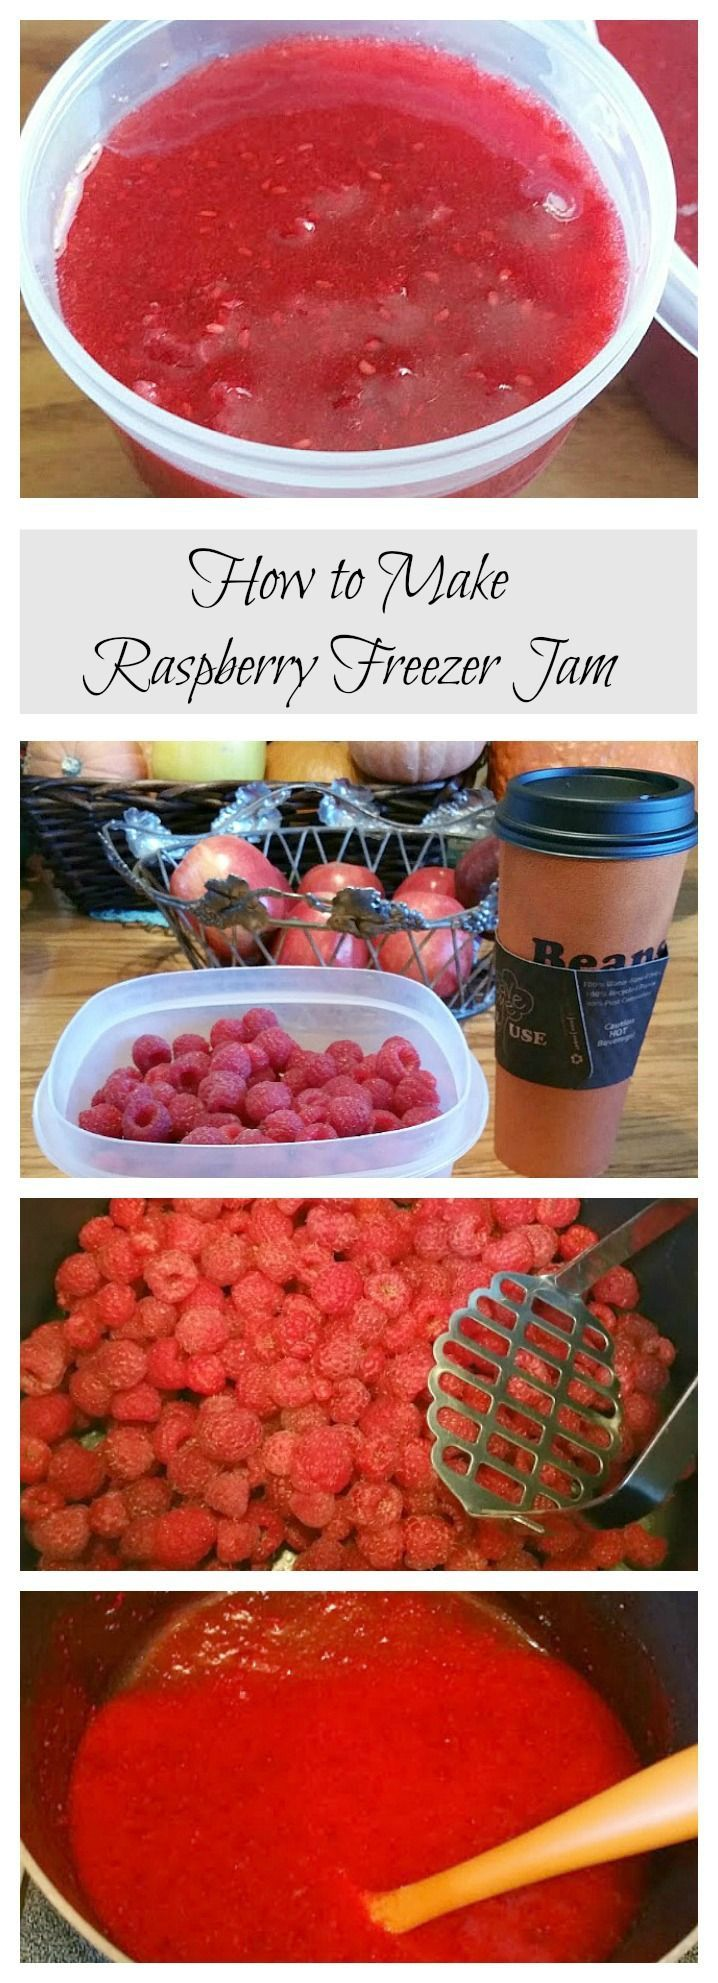 Don�t you just love homemade raspberry jam?  We�ve gotten lots of fresh raspberries from our garden this year, so I have been able to make raspberry freezer jam.  At our house we love to have raspberry jam on toast for breakfast or for a late night snack.